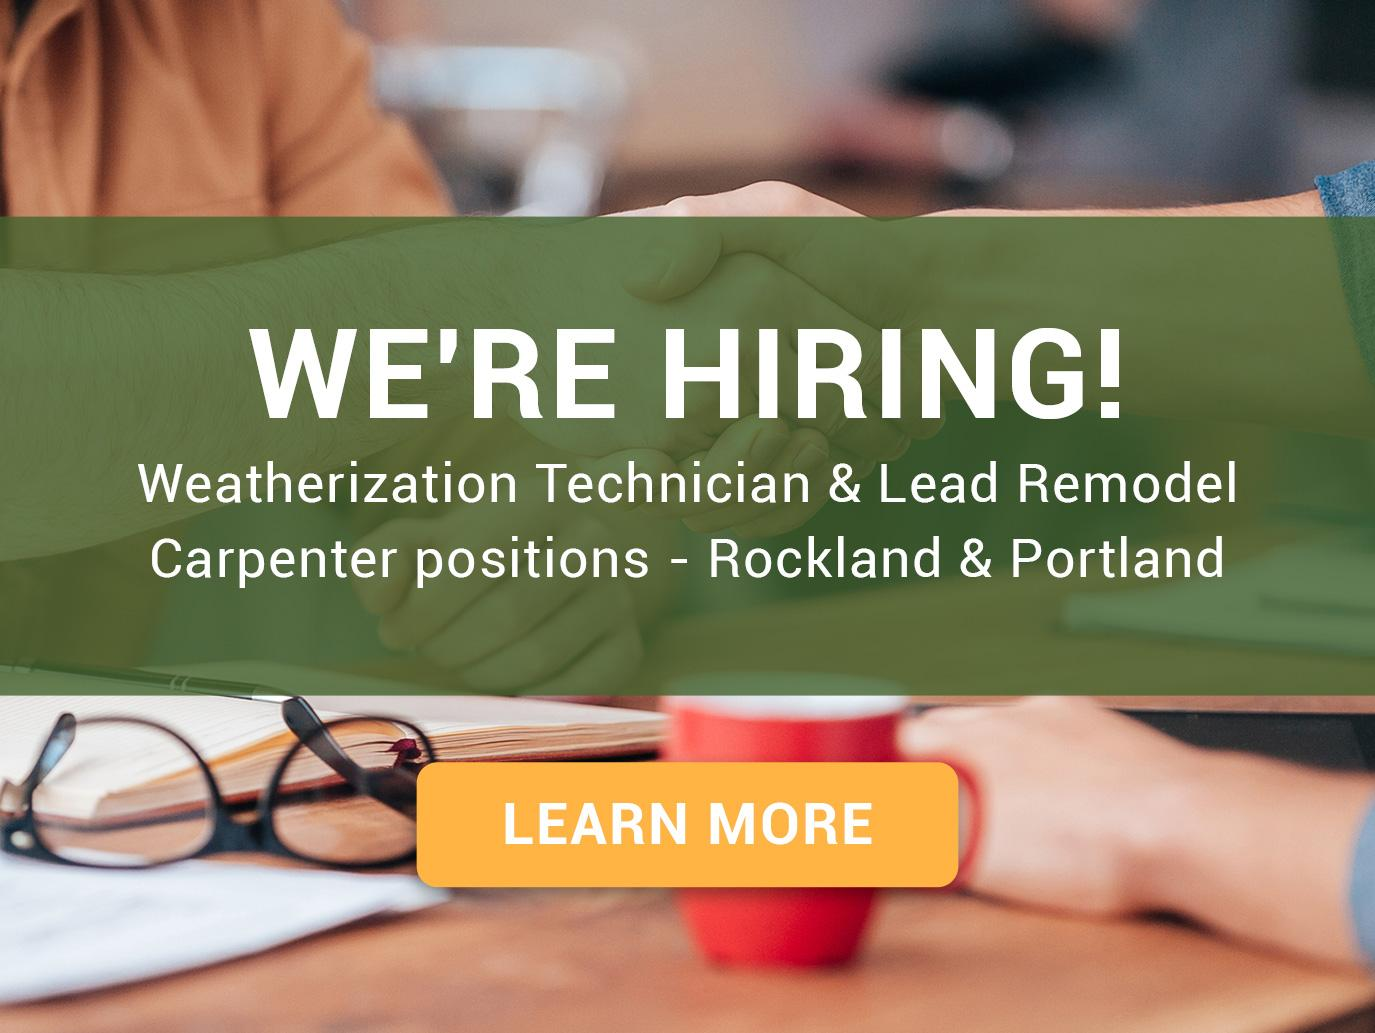 We at Evergreen Home Performance are hiring at both our Rockland and Portland locations.